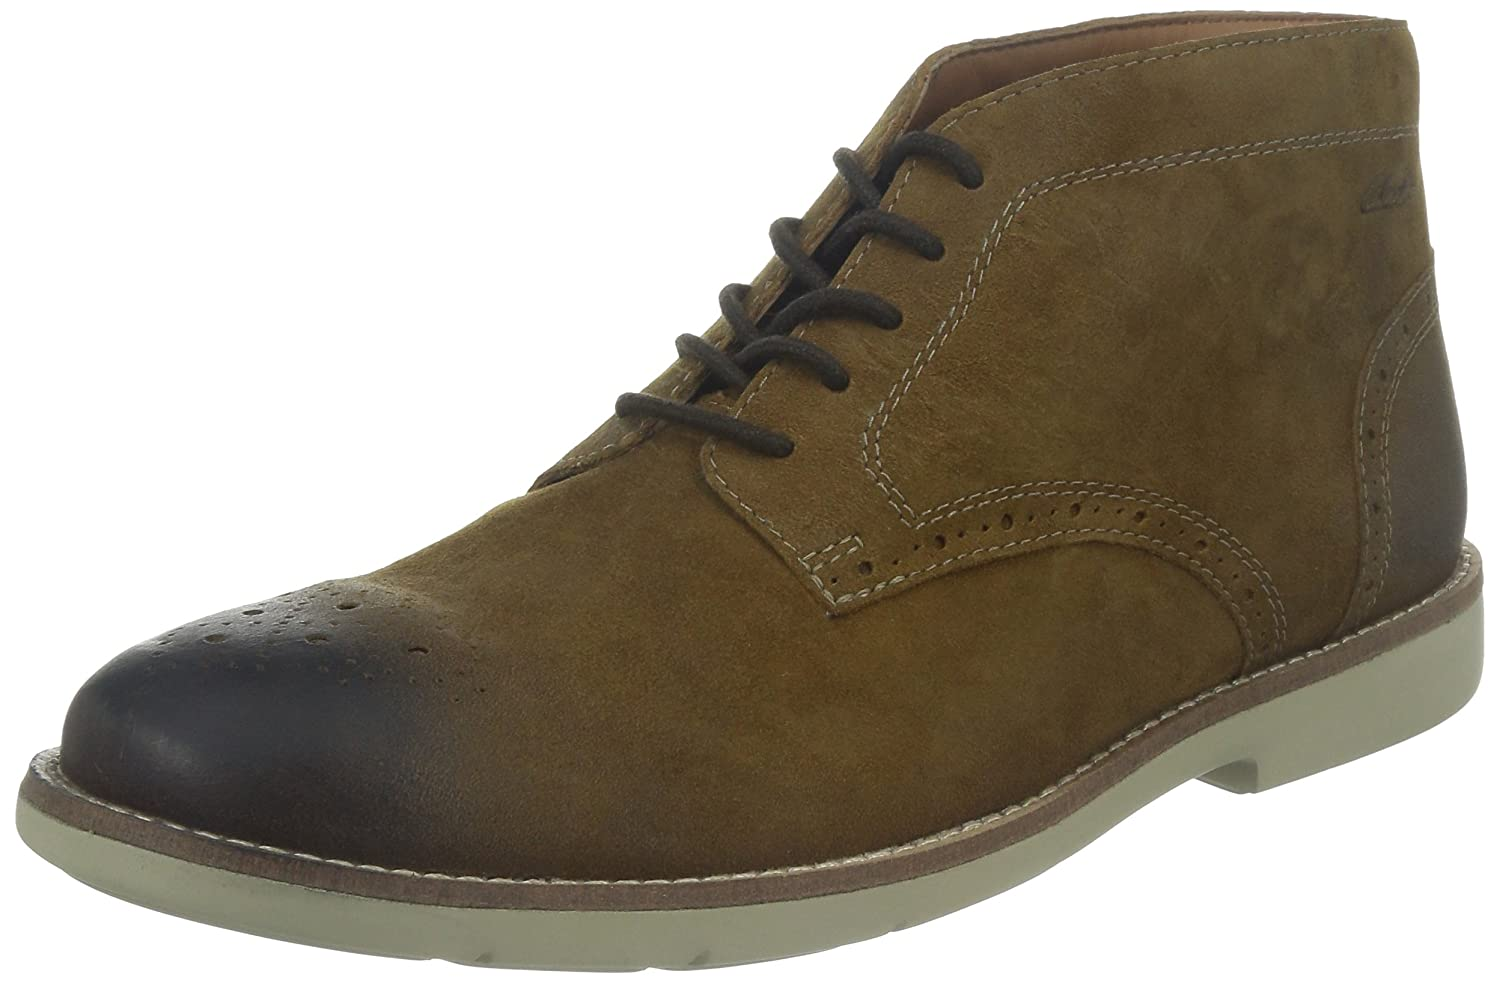 Clarks Raspin Limit, Chaussures de ville homme Marron 44.5 261032037 26103203_BrownLeather-44.5